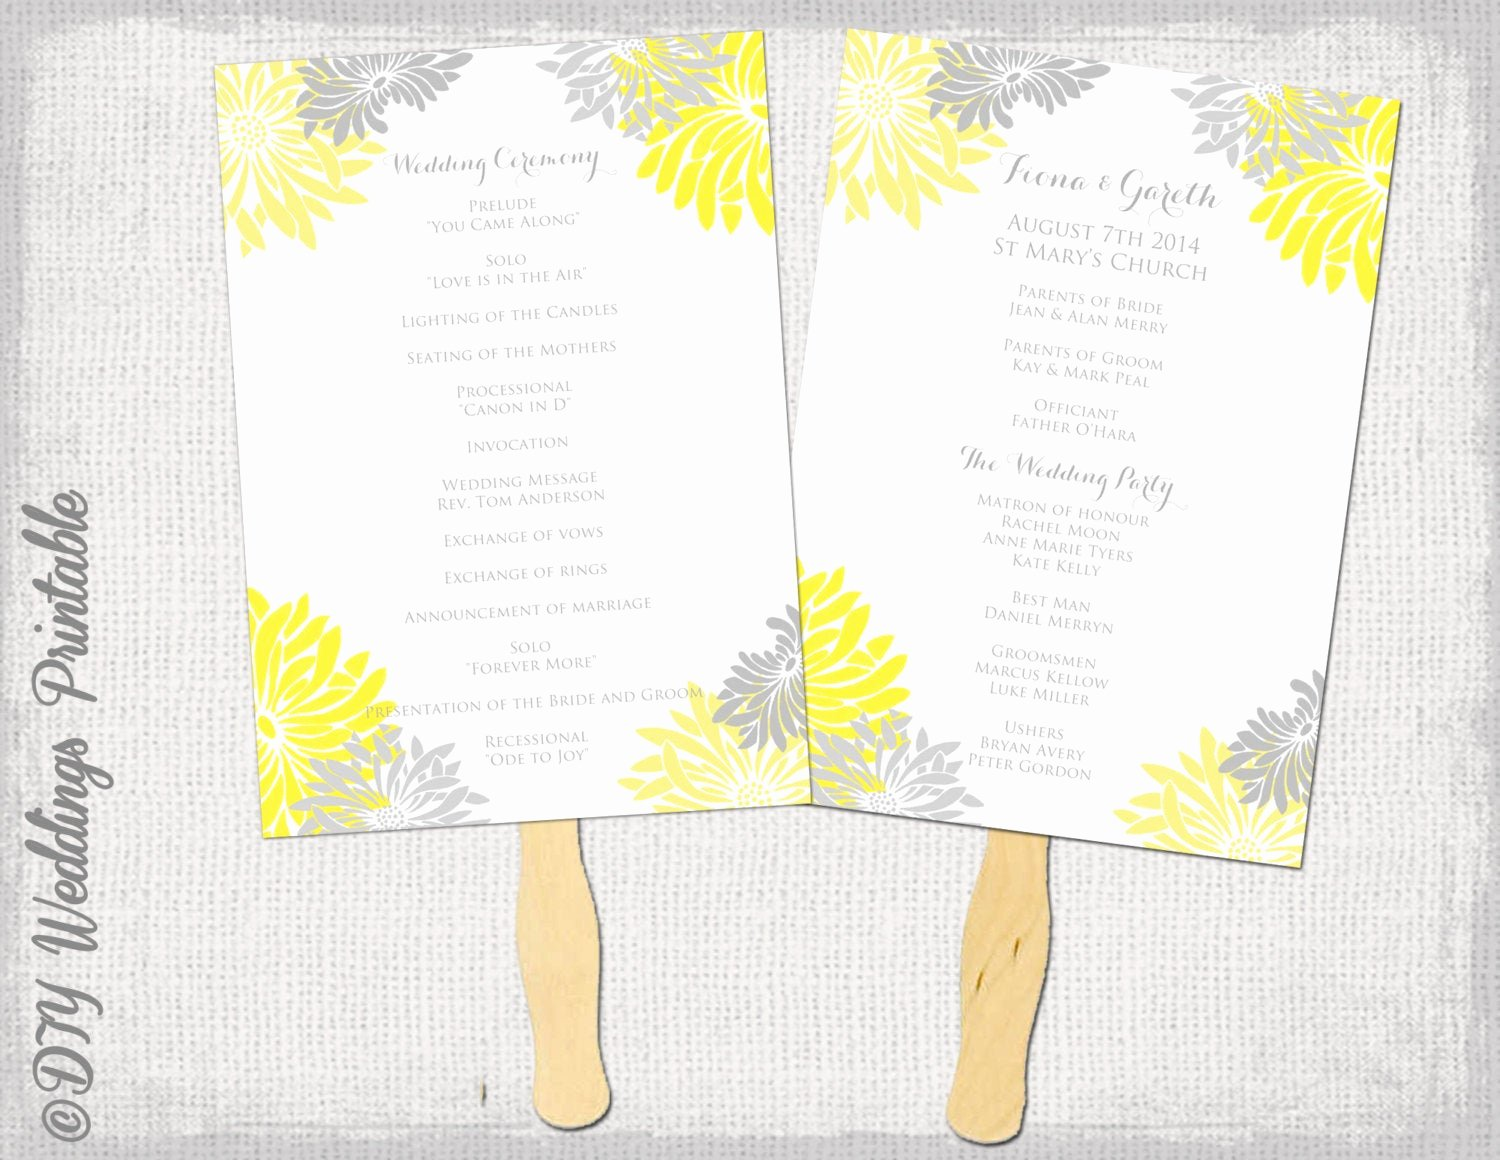 Diy Wedding Program Fan Templates Awesome Wedding Fan Program Template Flower Burst Yellow